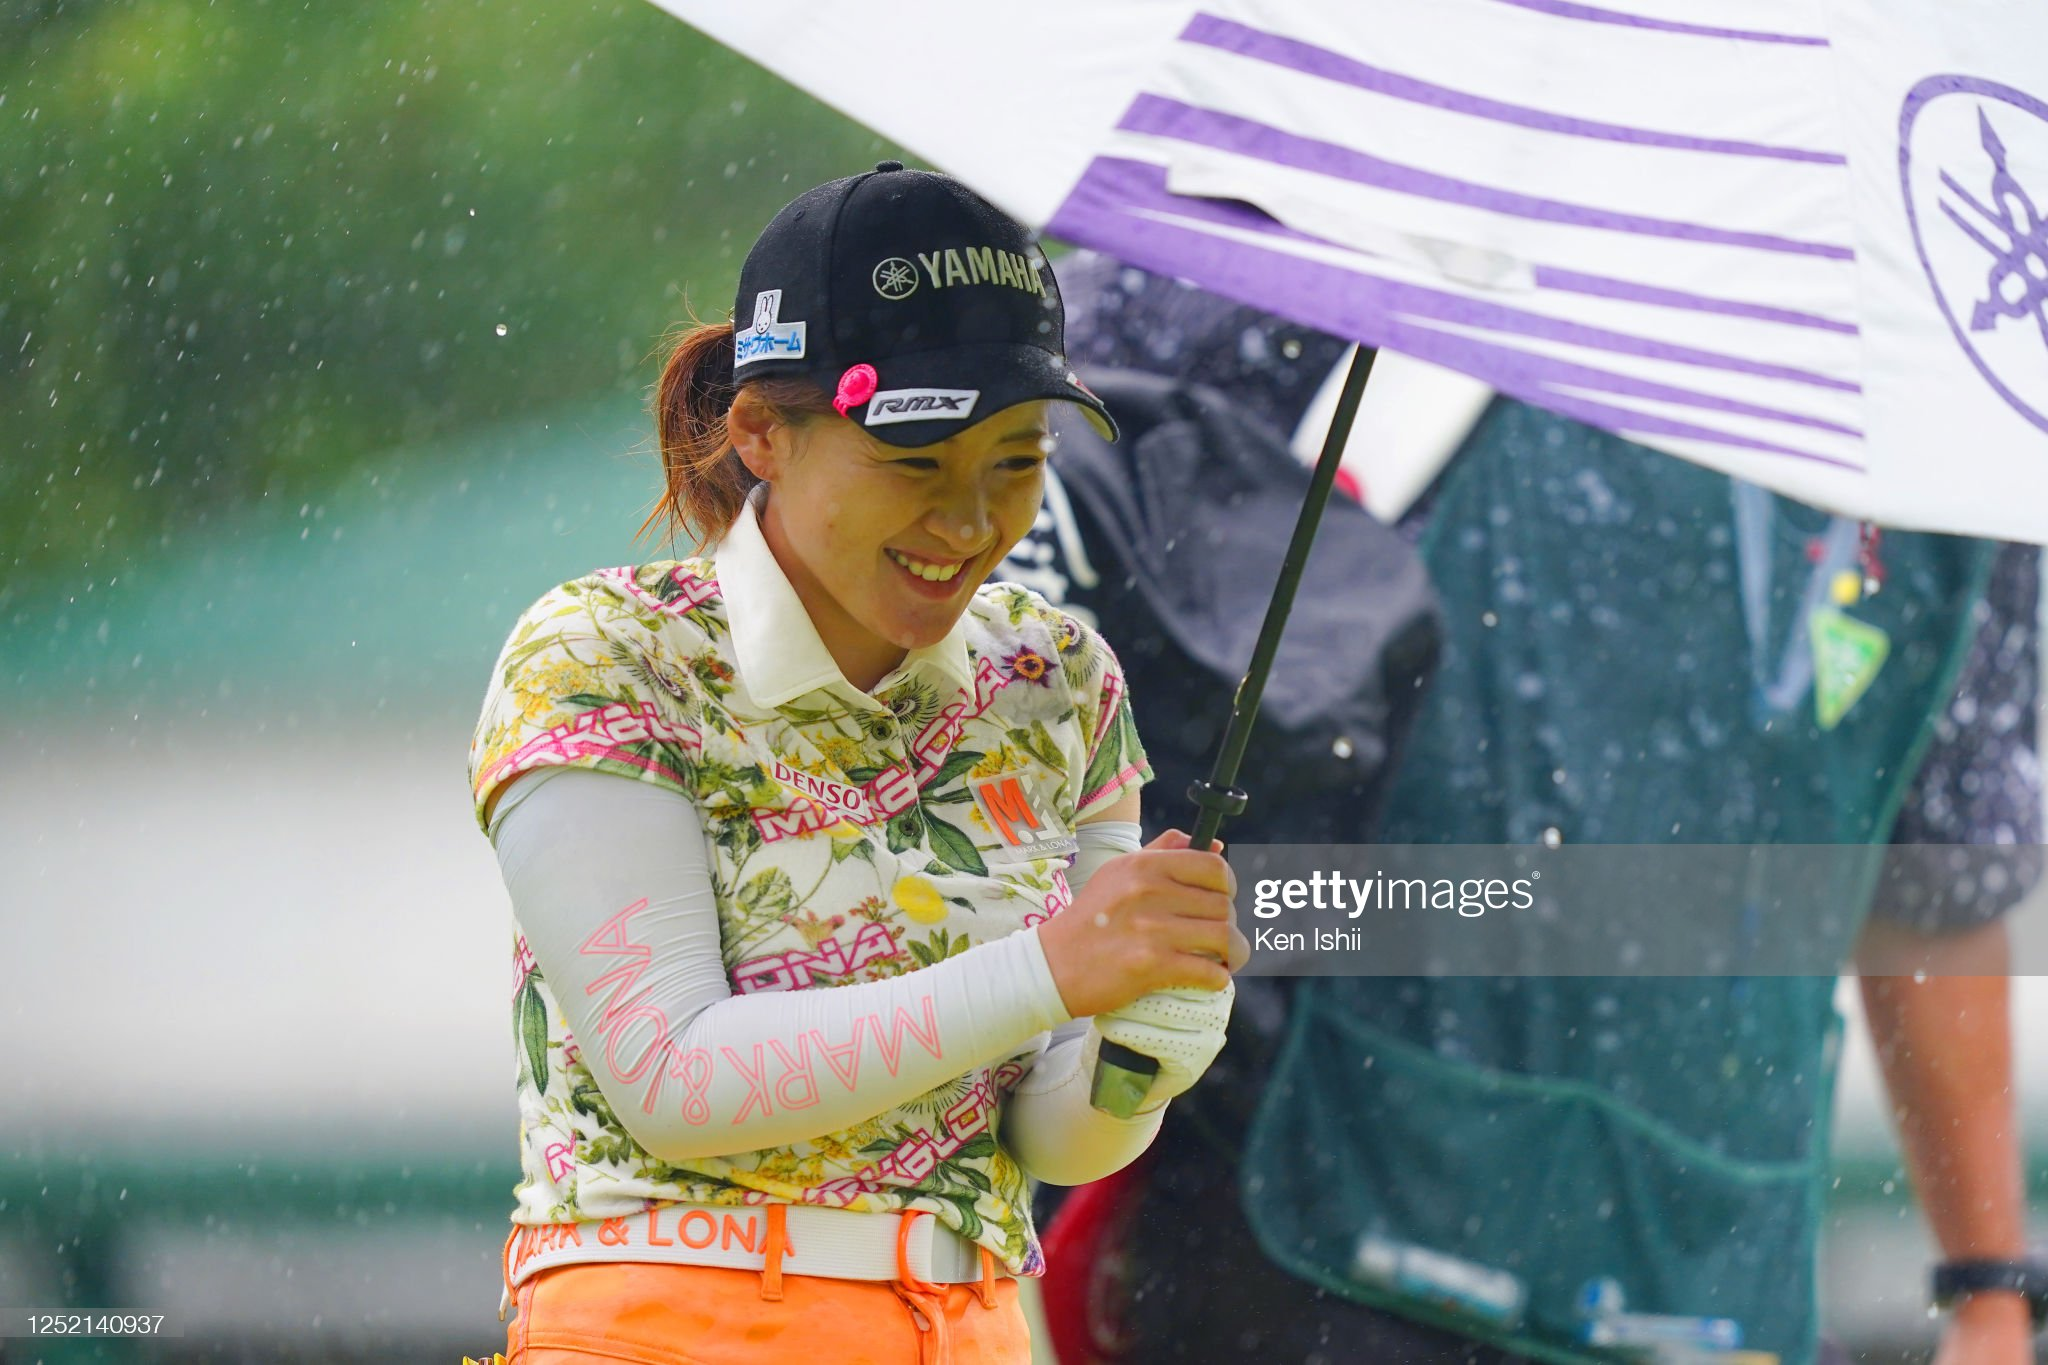 https://media.gettyimages.com/photos/kana-nagai-of-japan-smiles-after-her-tee-shot-on-the-1st-hole-during-picture-id1252140937?s=2048x2048